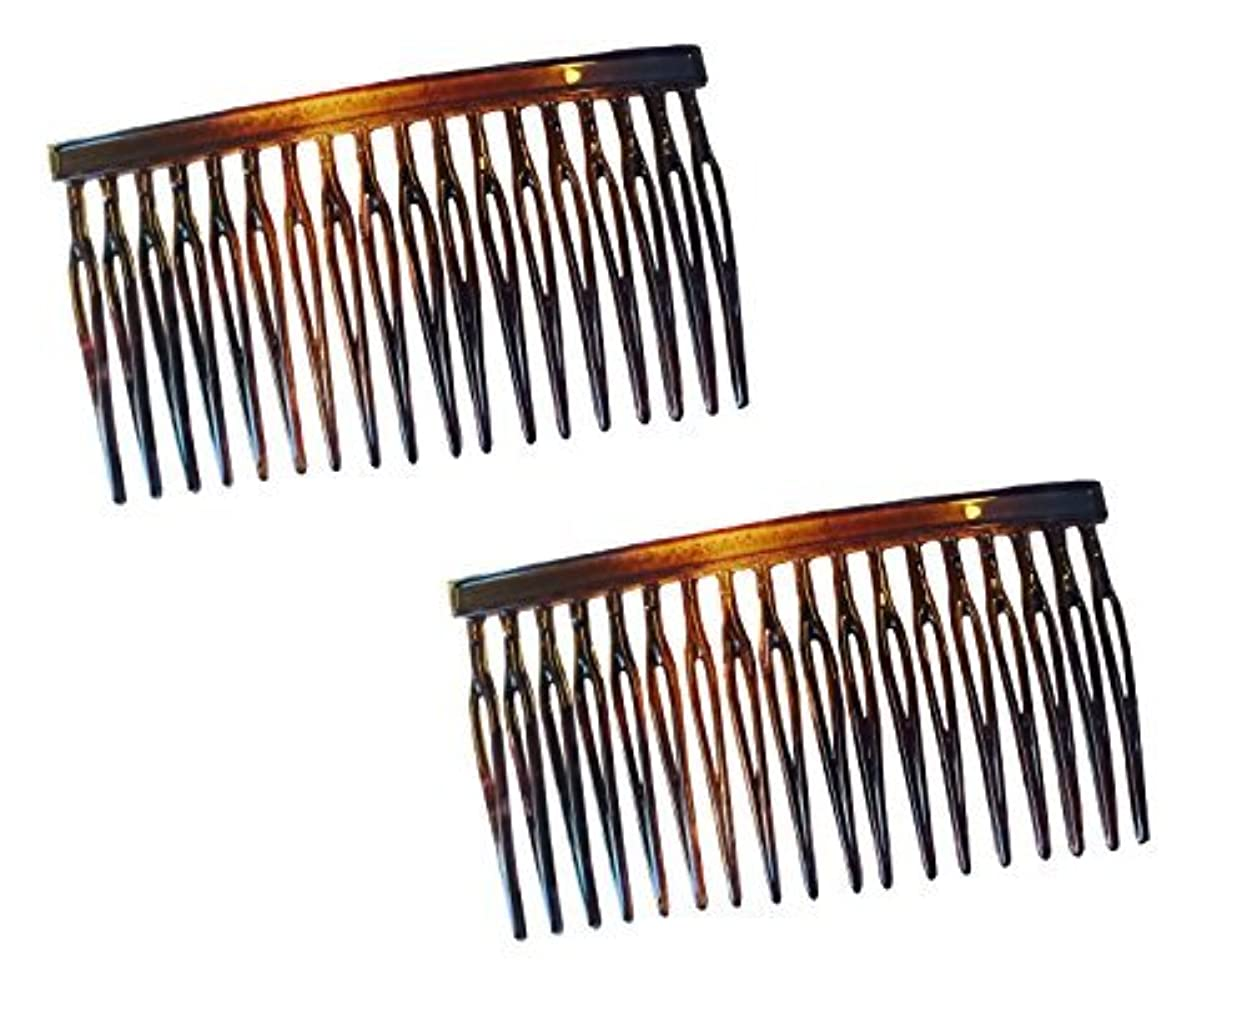 トロピカル退化するクレデンシャルParcelona French Light 2 Pieces Small Glossy Celluloid Shell Good Grip Updo 18 Teeth Side Hair Comb Combs [並行輸入品]